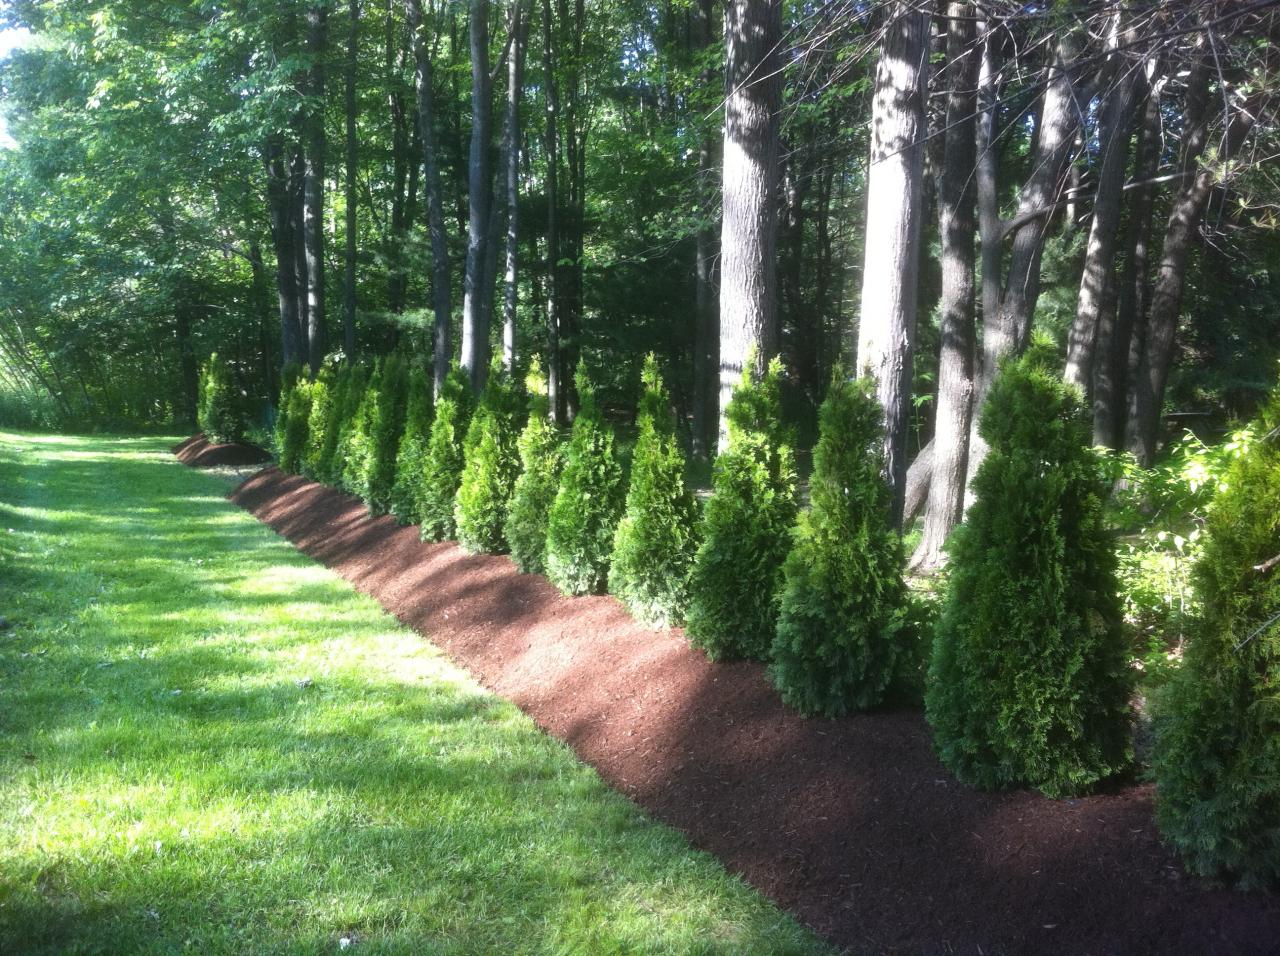 Custom landscape concepts llc landscape services How to landscape